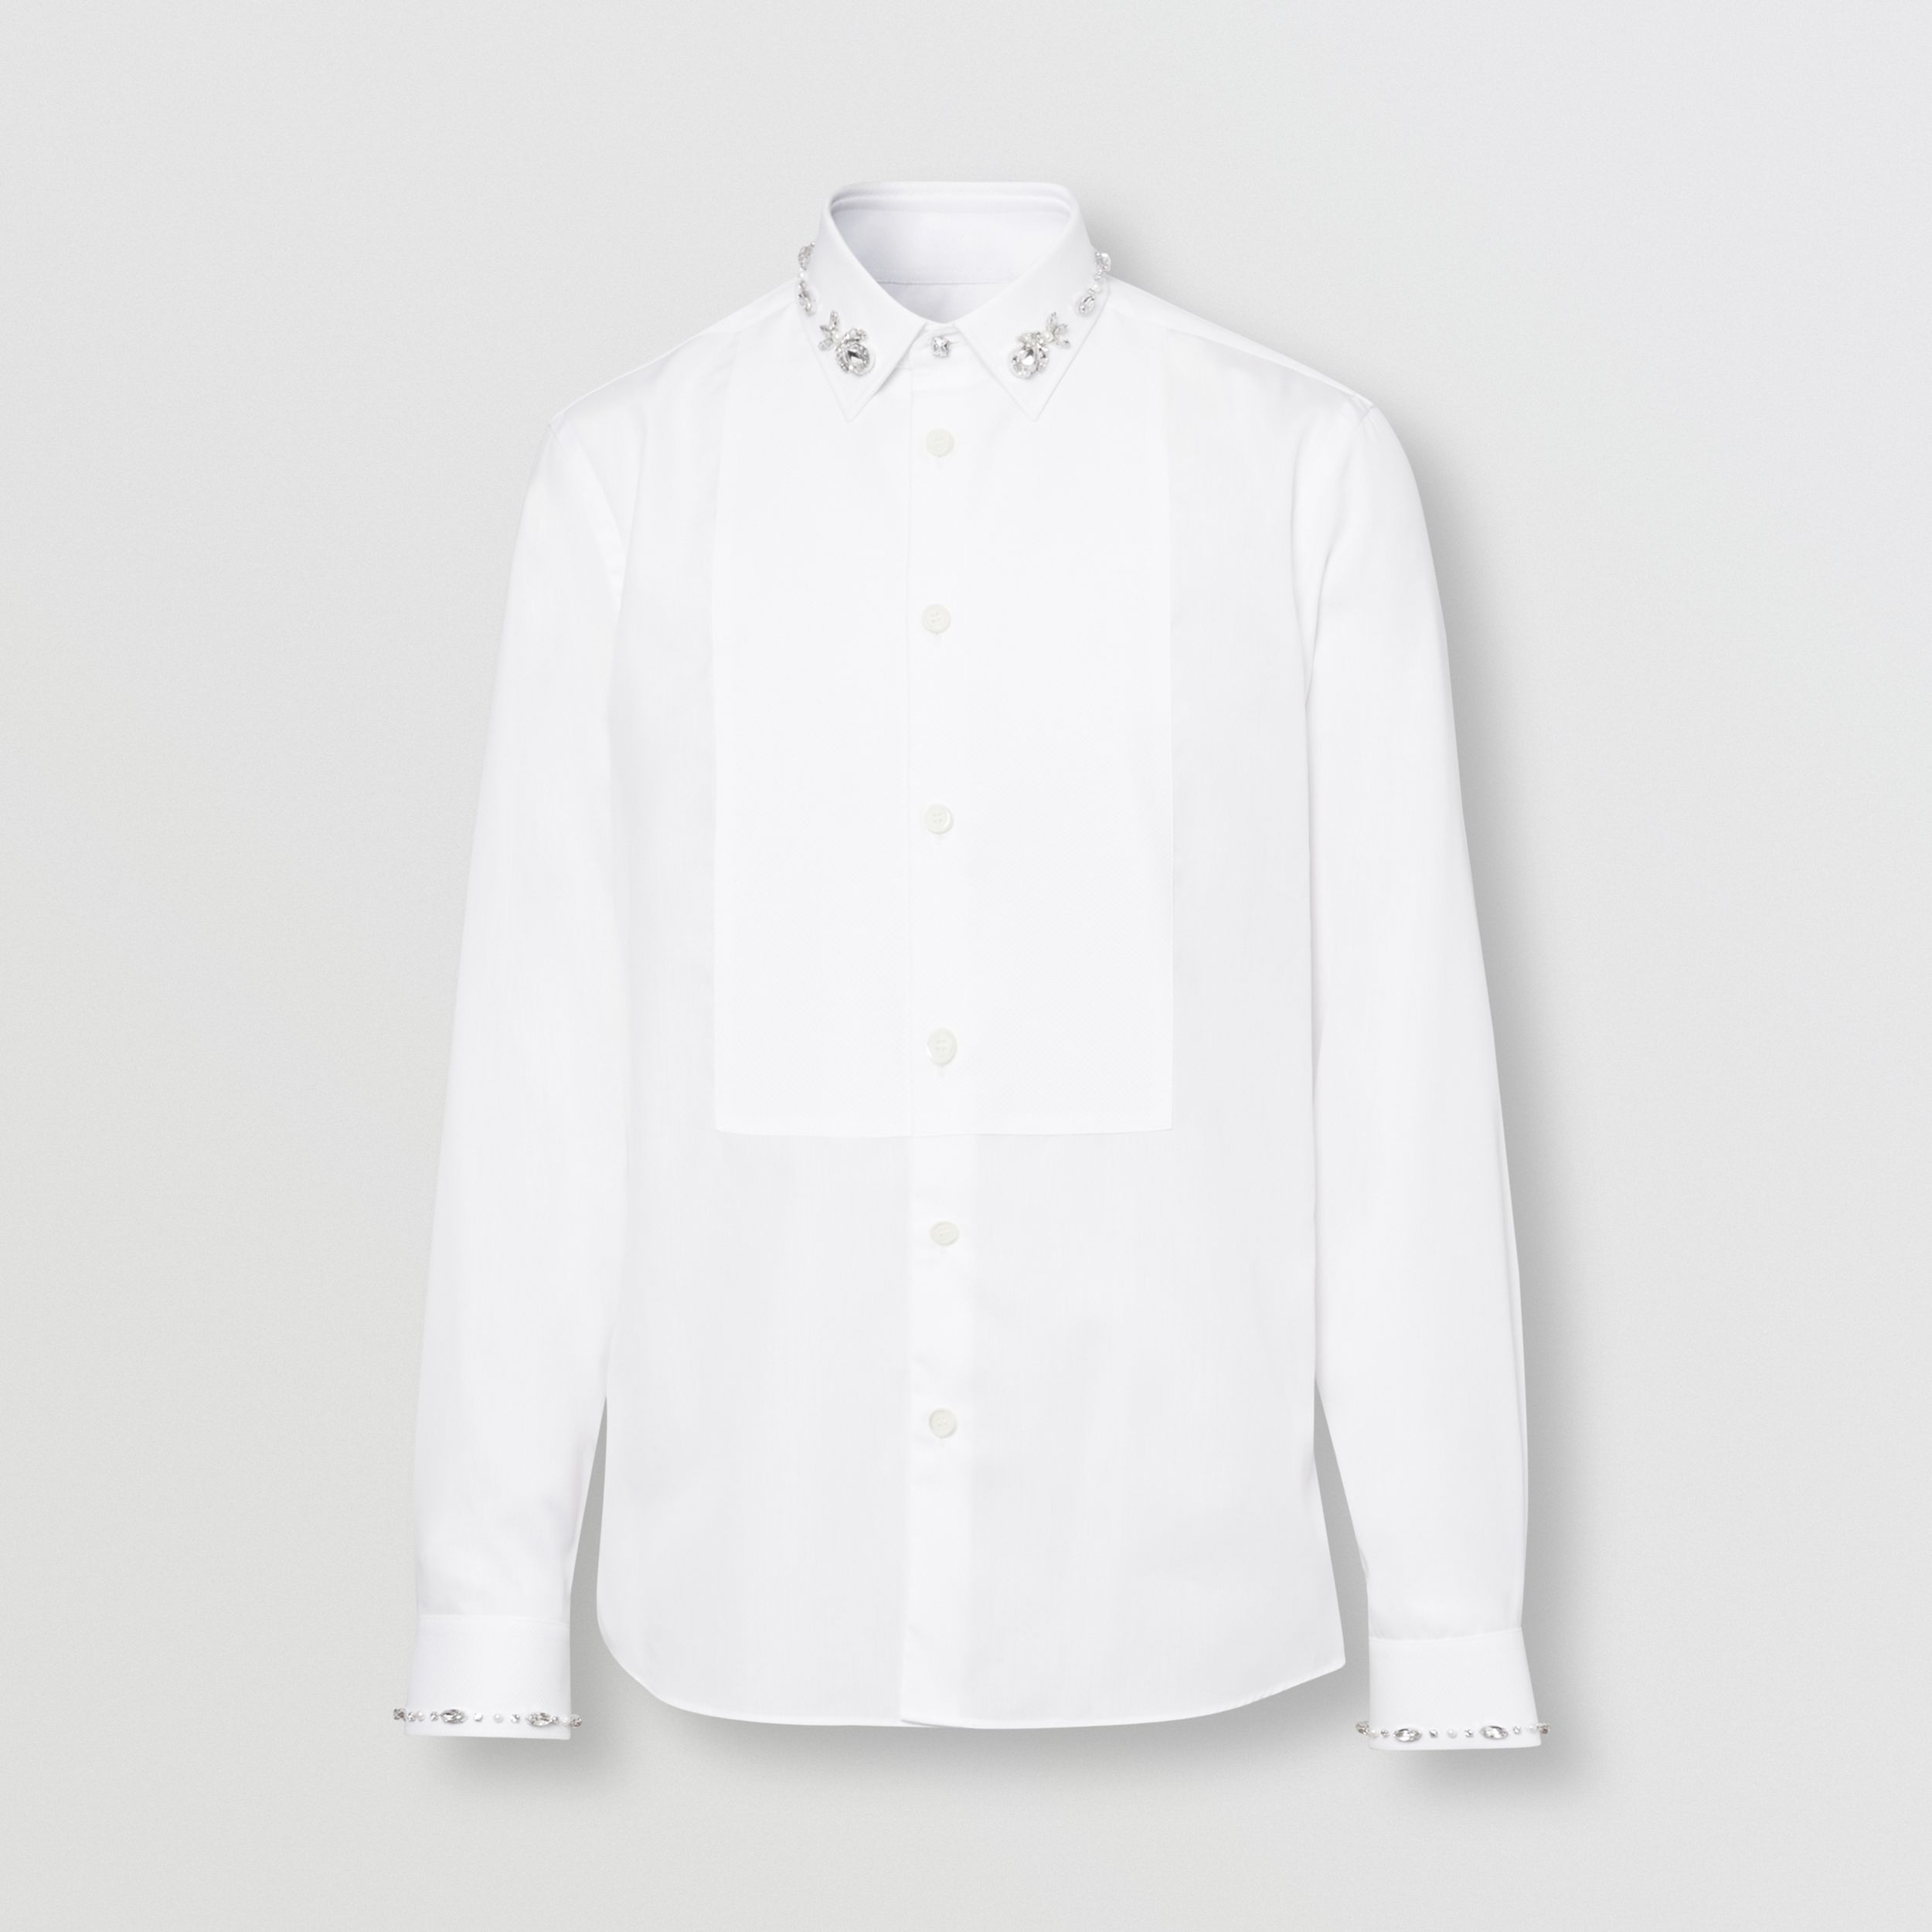 Slim Fit Embellished Cotton Poplin Shirt in White - Men | Burberry - 4